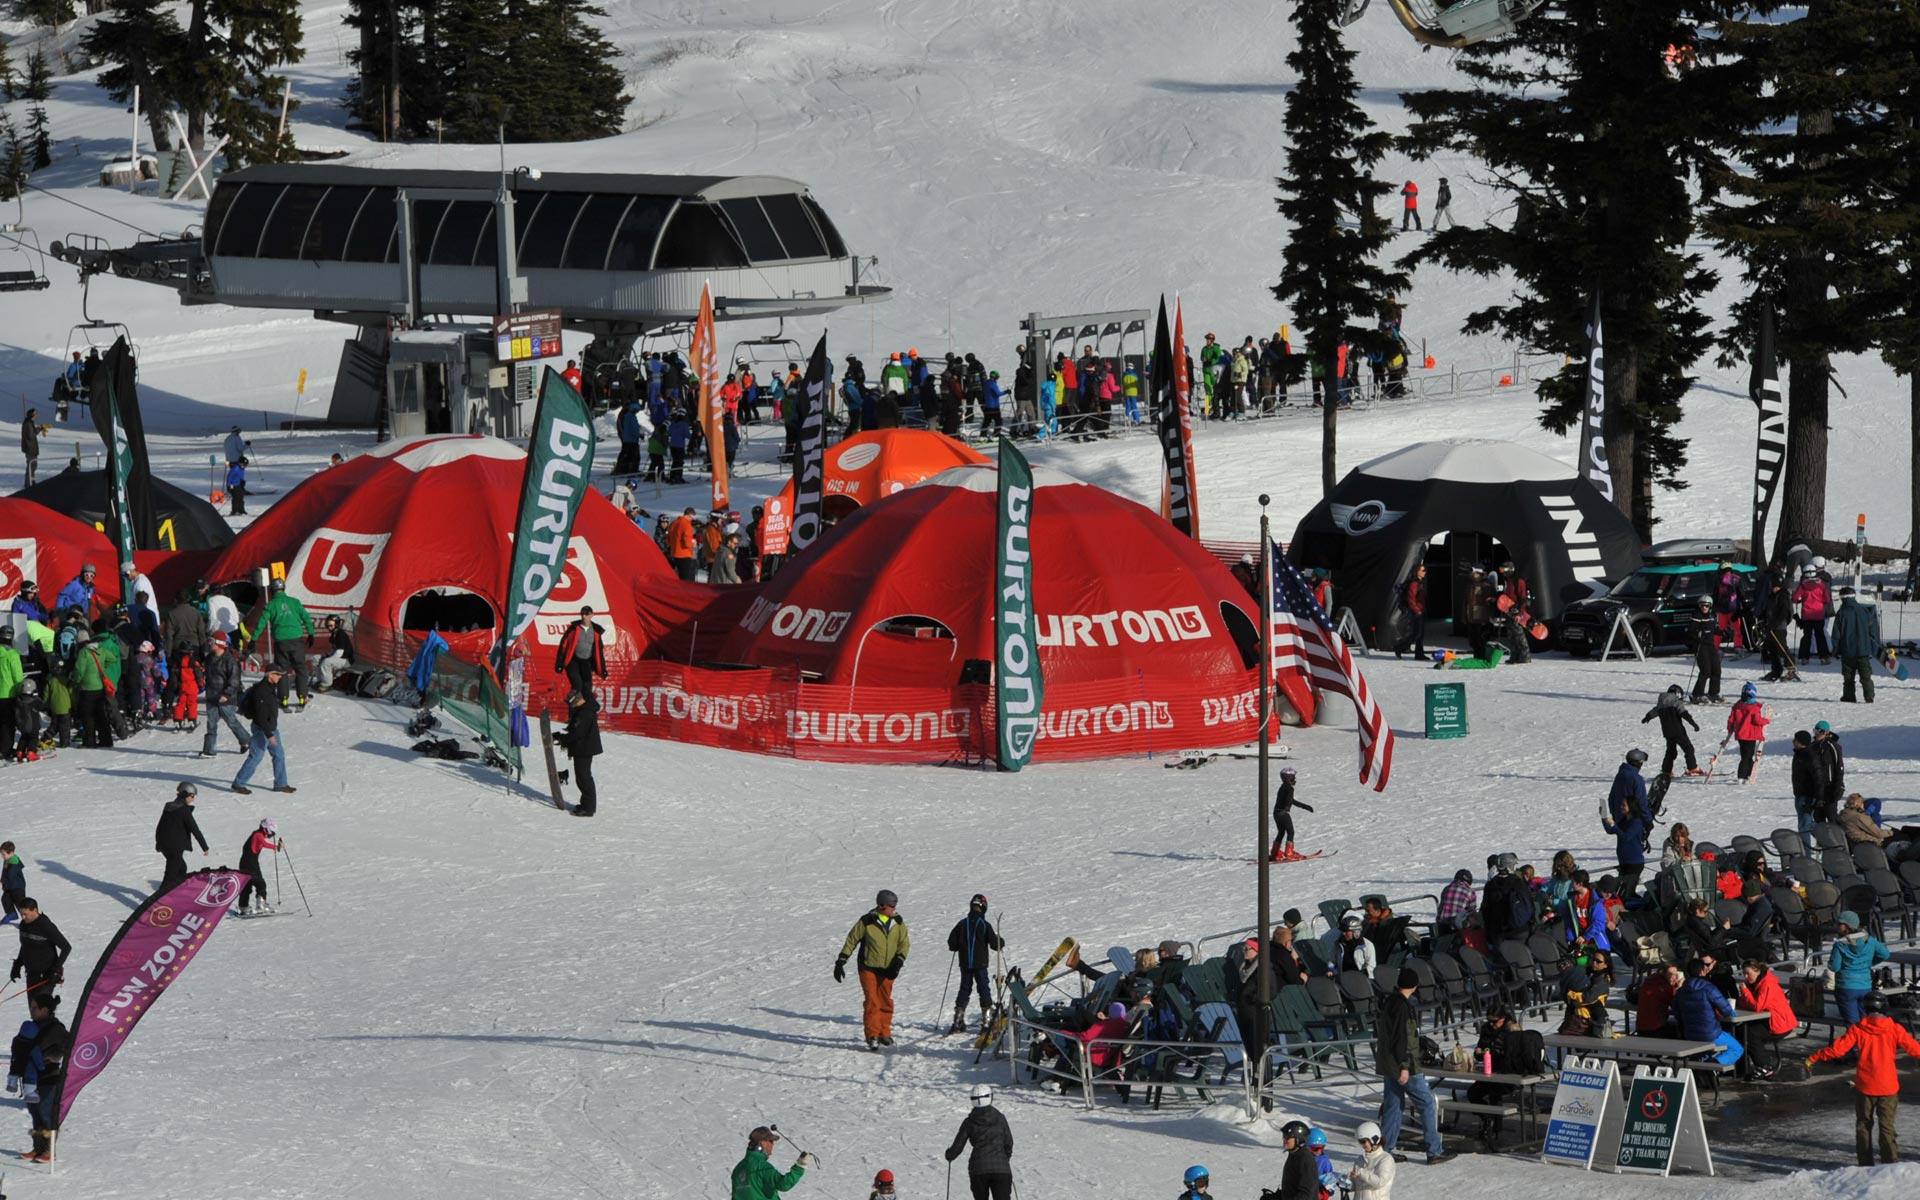 The Burton Mt. Festival at Mt. Hood Meadows